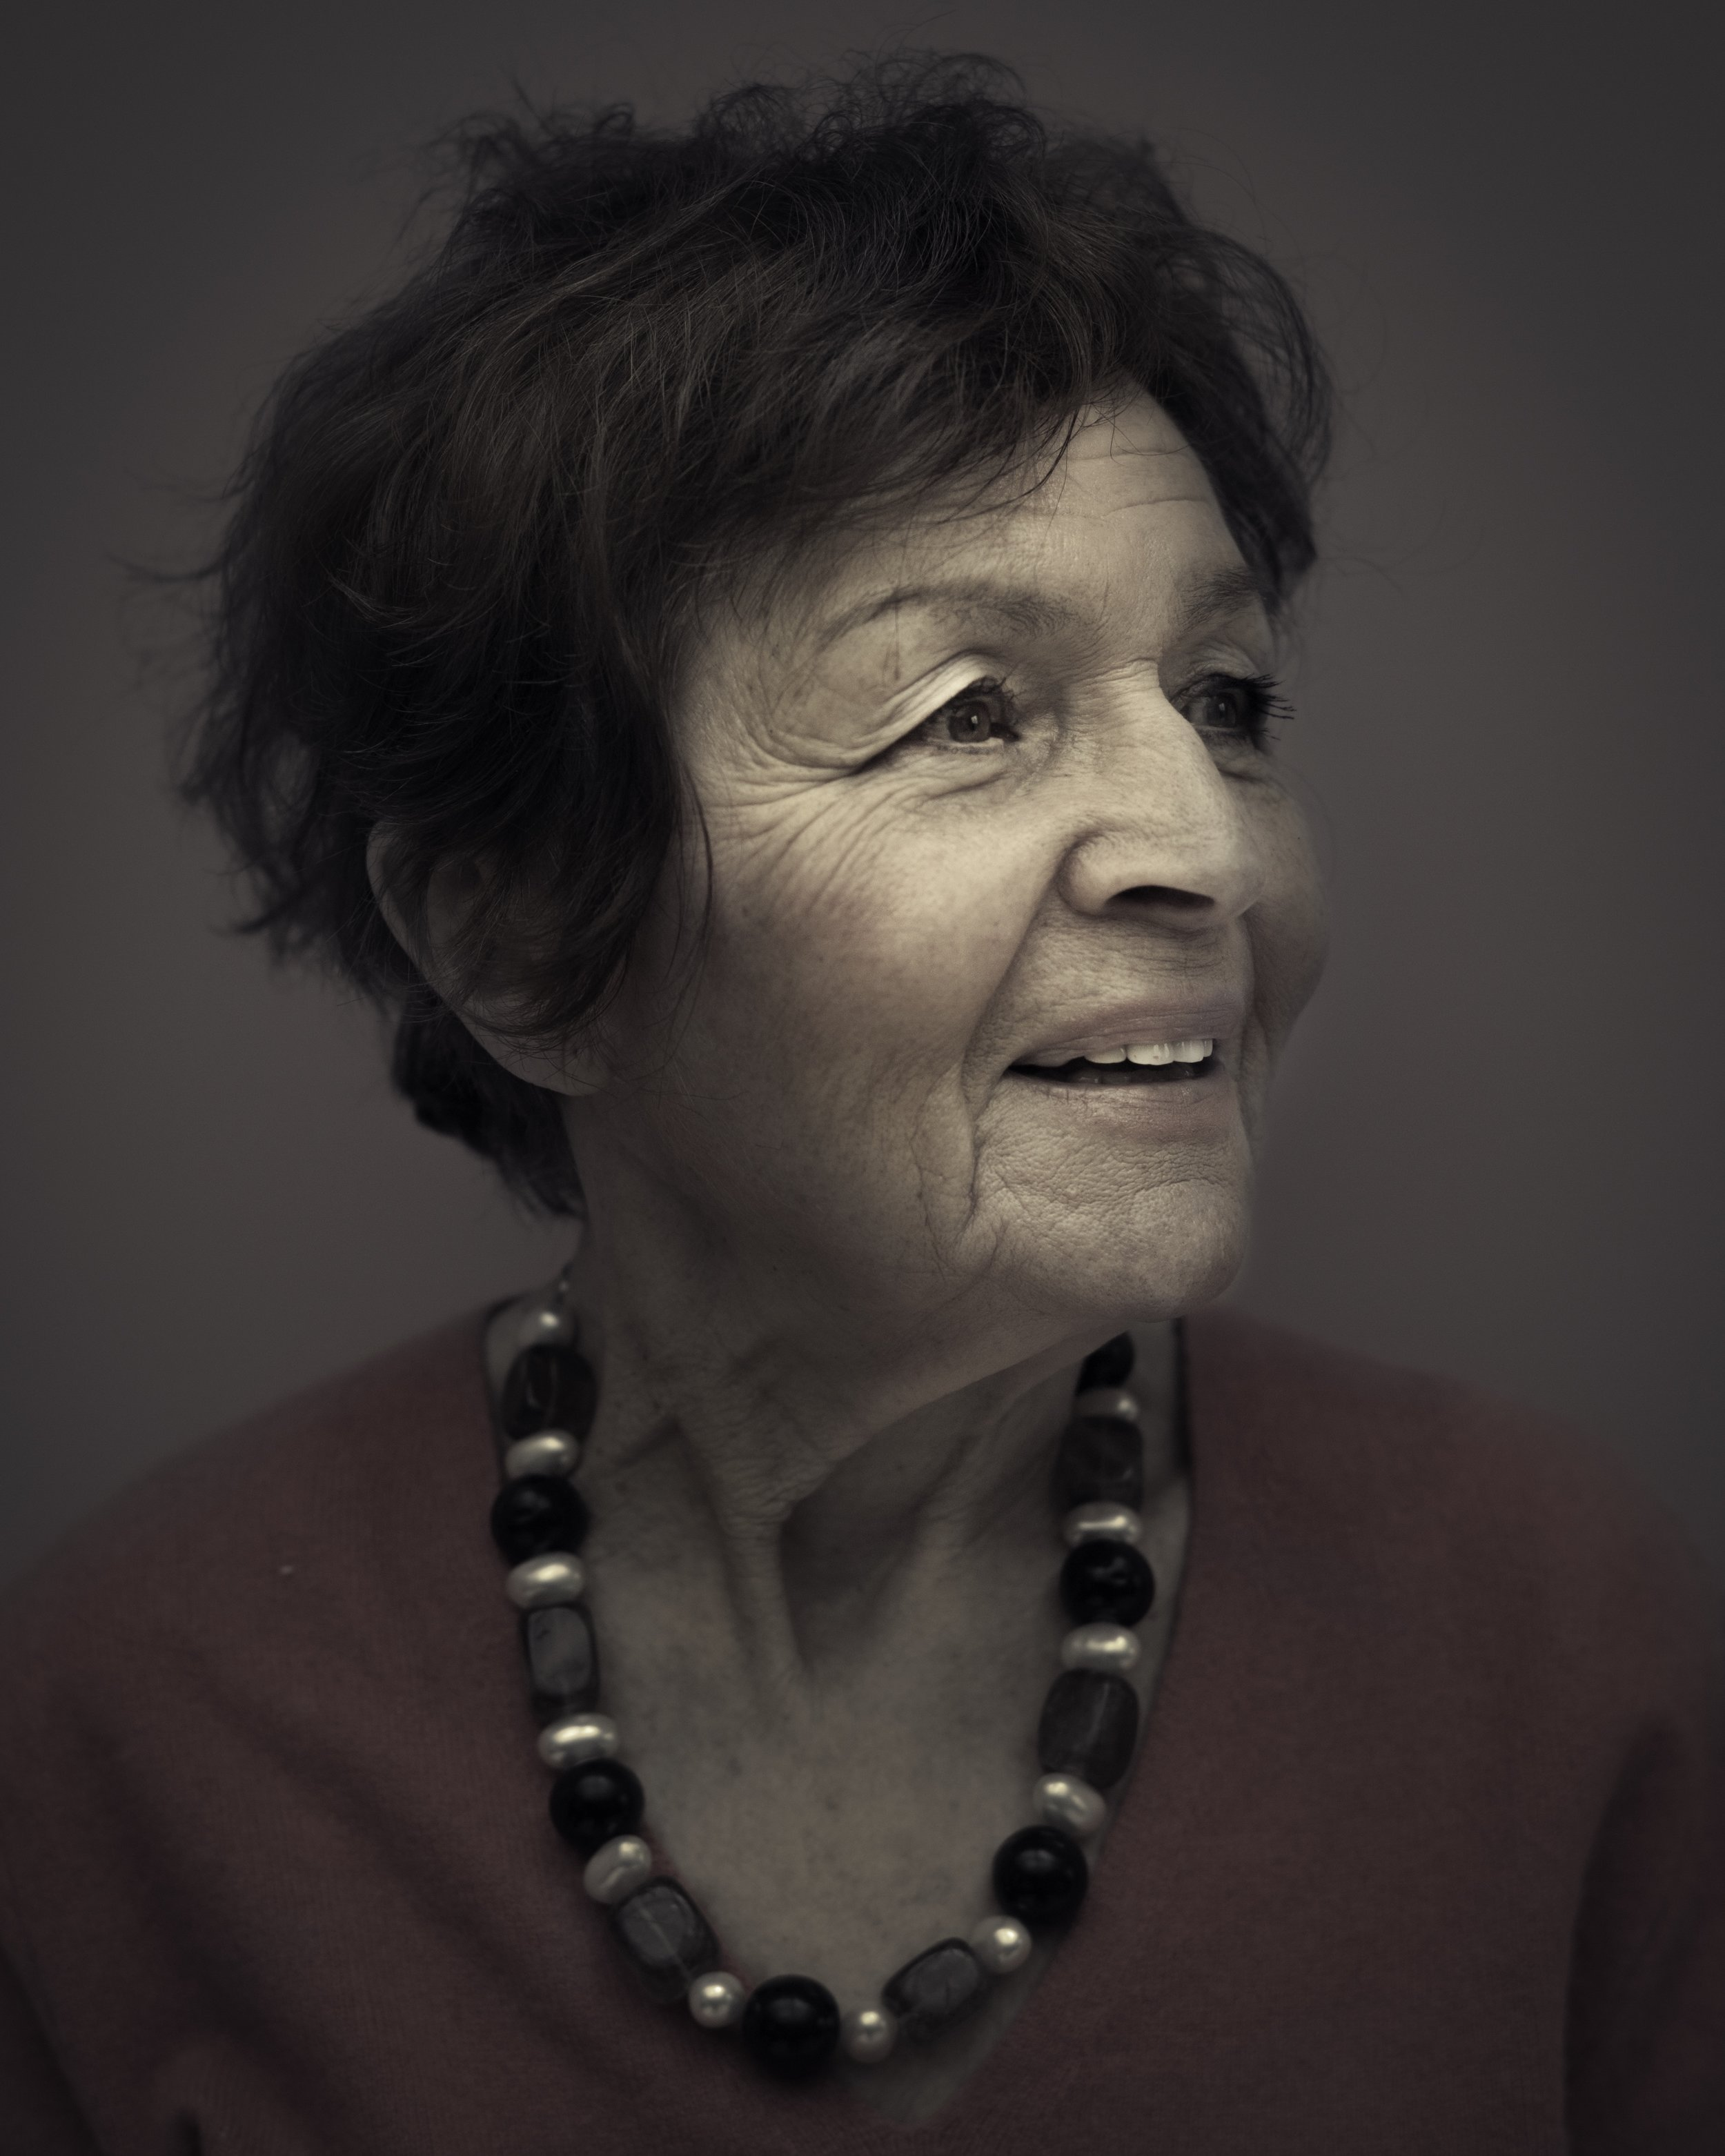 Janine - Now 82, Janine Webber has dedicated her life to telling her own unique story of the Holocaust. Now, with the short film 'Edek', she is adding another chapter in a way that has never been seen before.